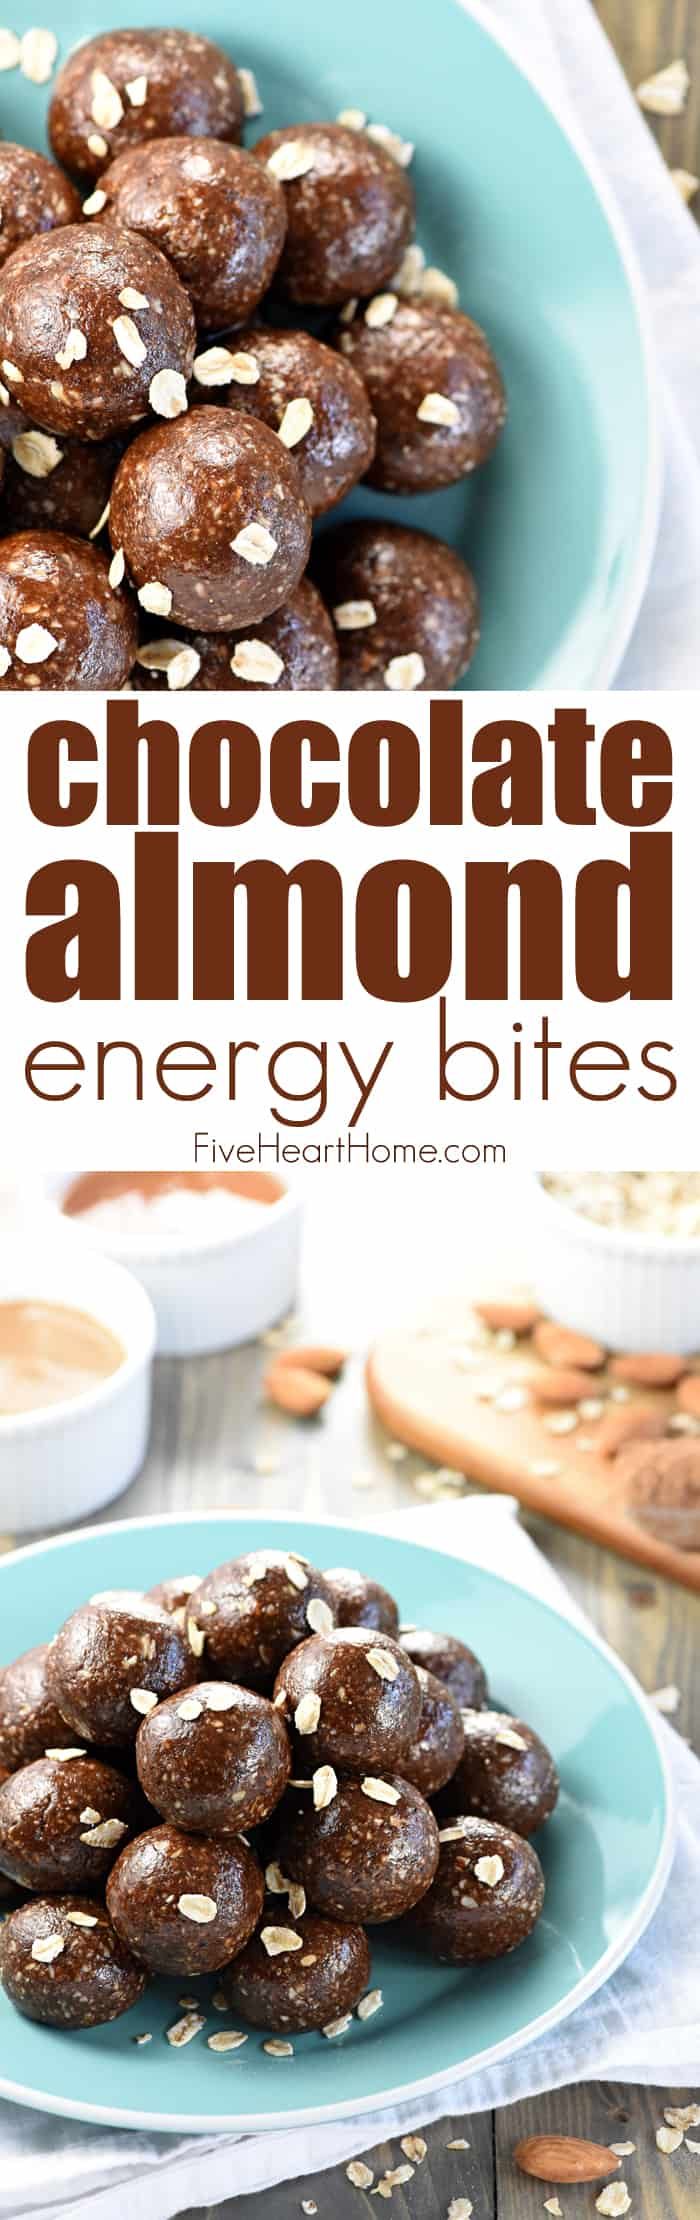 Chocolate Almond Energy Bites ~ ground almonds and oats are combined with almond butter, honey, cocoa powder, and chia seeds in these wholesome, protein-packed energy balls, perfect for a quick snack or breakfast on-the-go! | FiveHeartHome.com